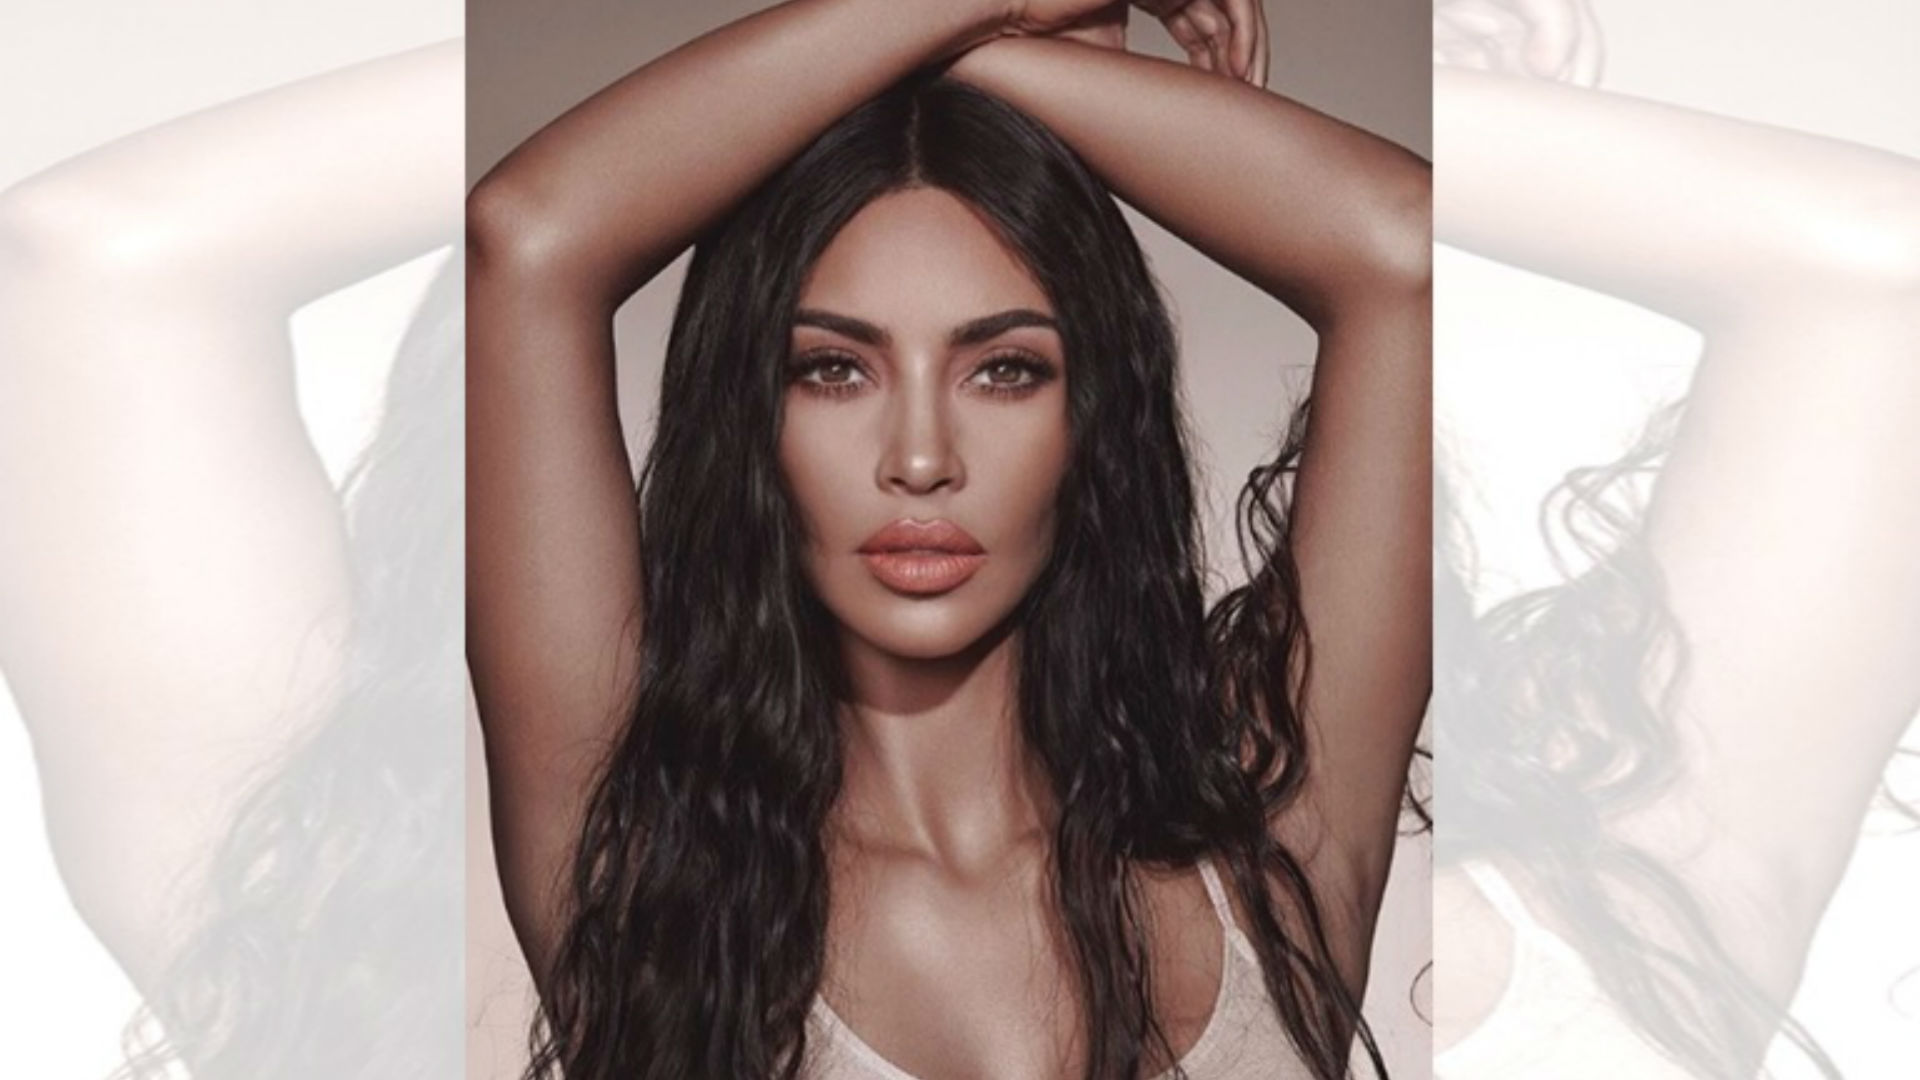 Kim Kardashian Aroused By The Neon Color Of Her Hair Photos